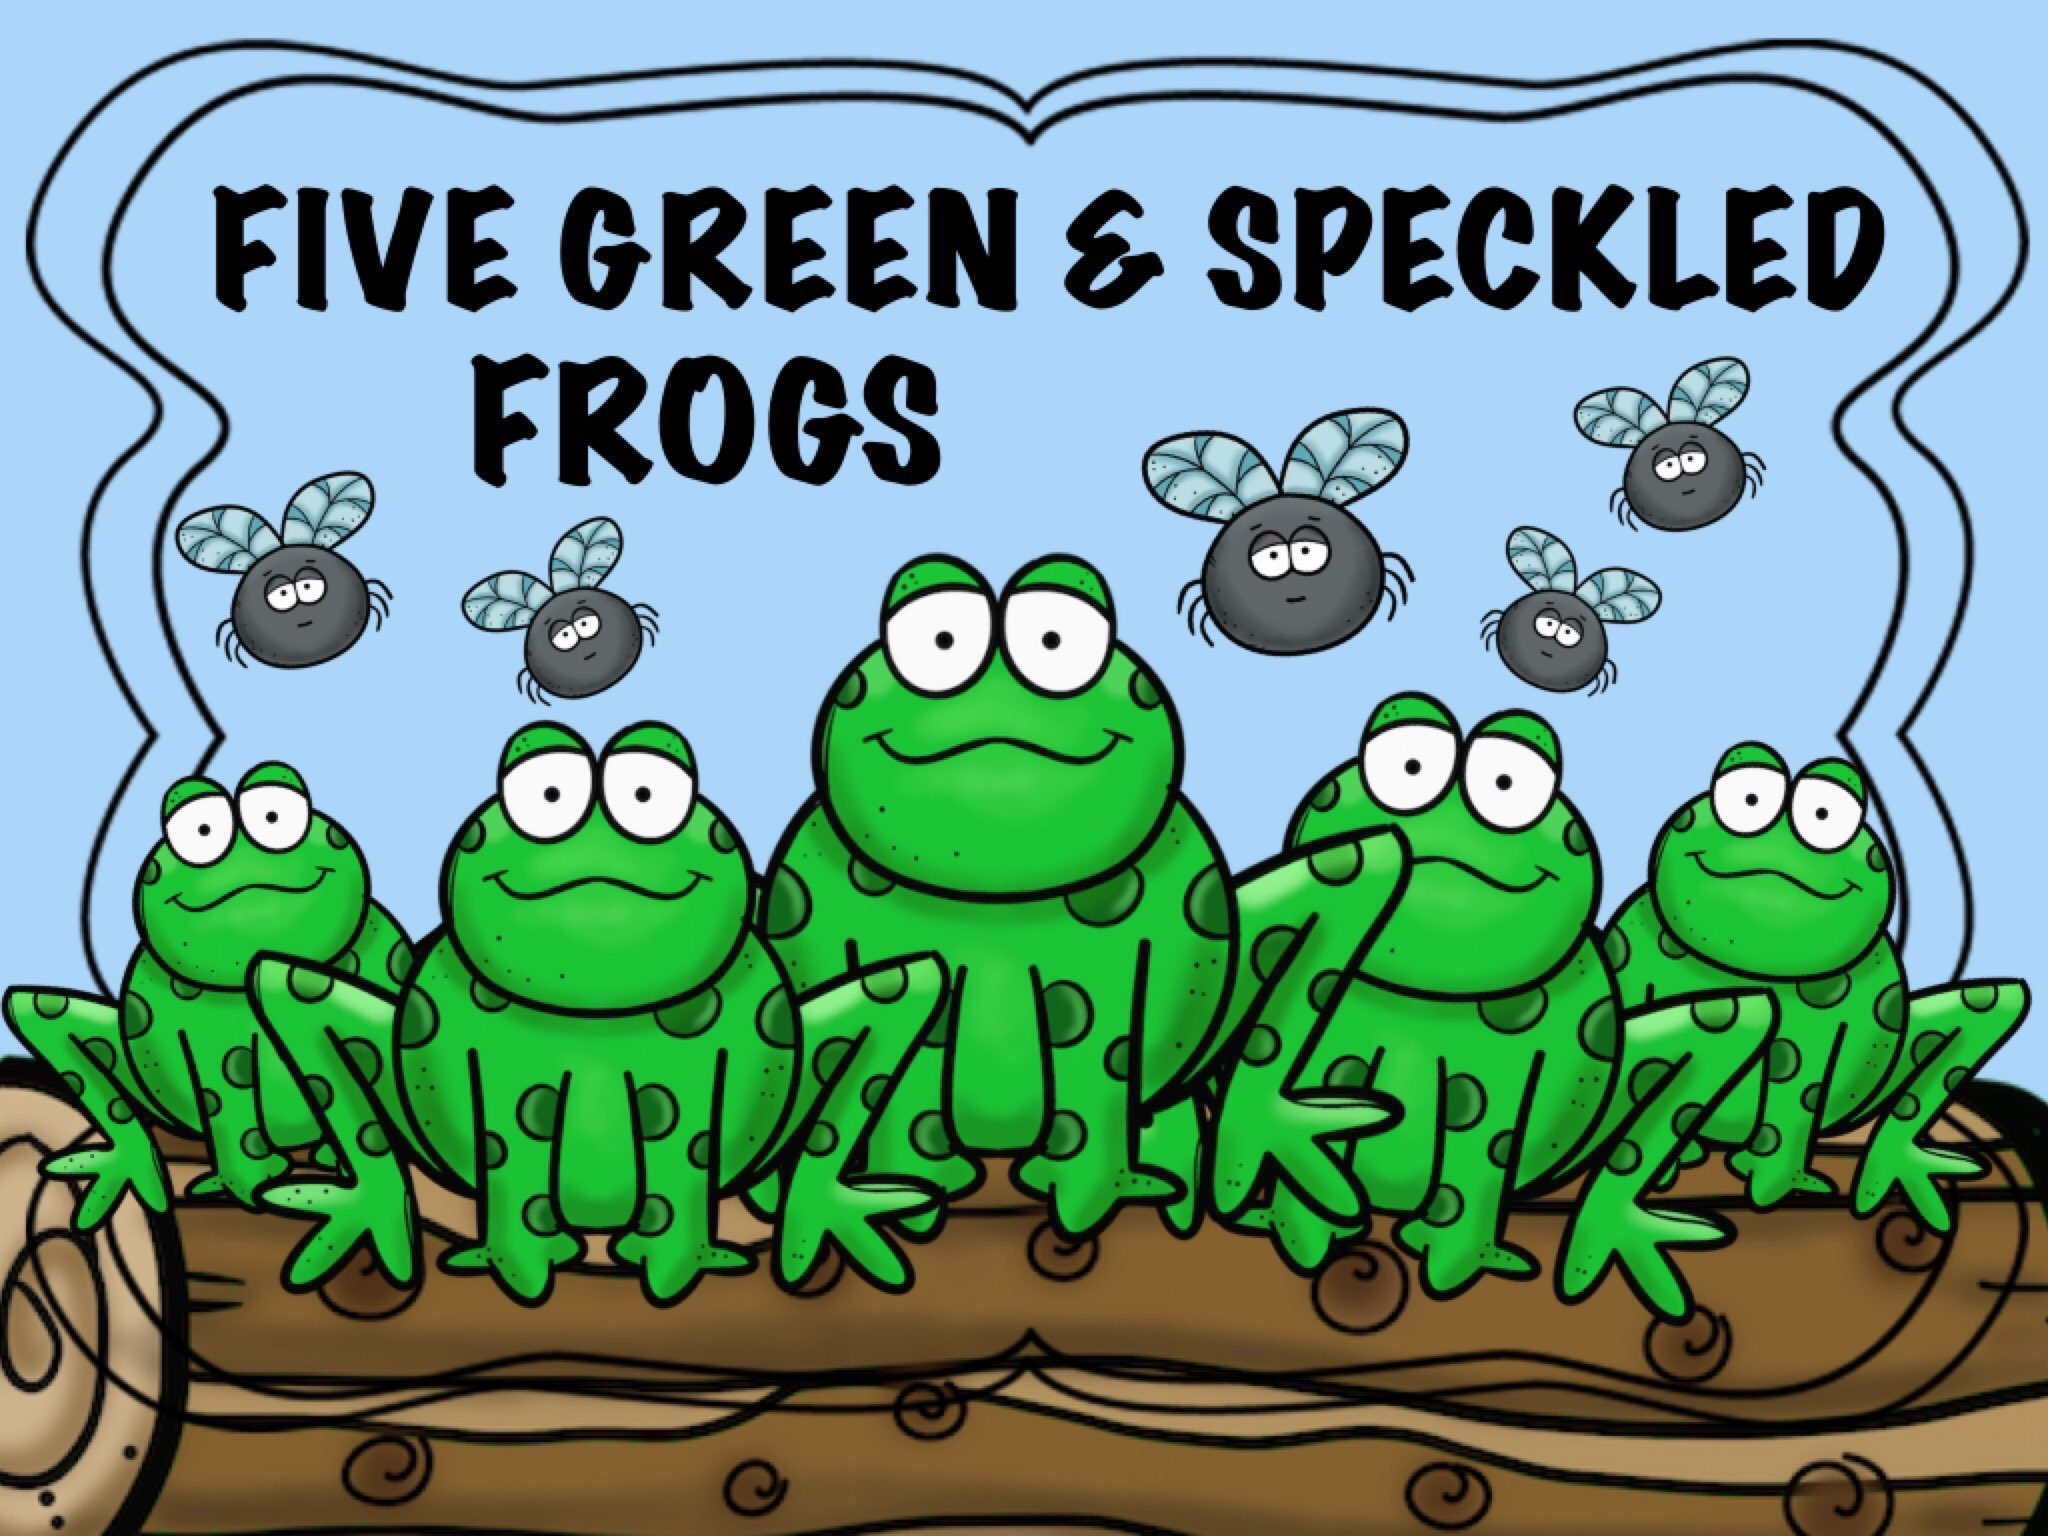 Play Five Green Speckled Frogs by Cici Lampe - on TinyTap